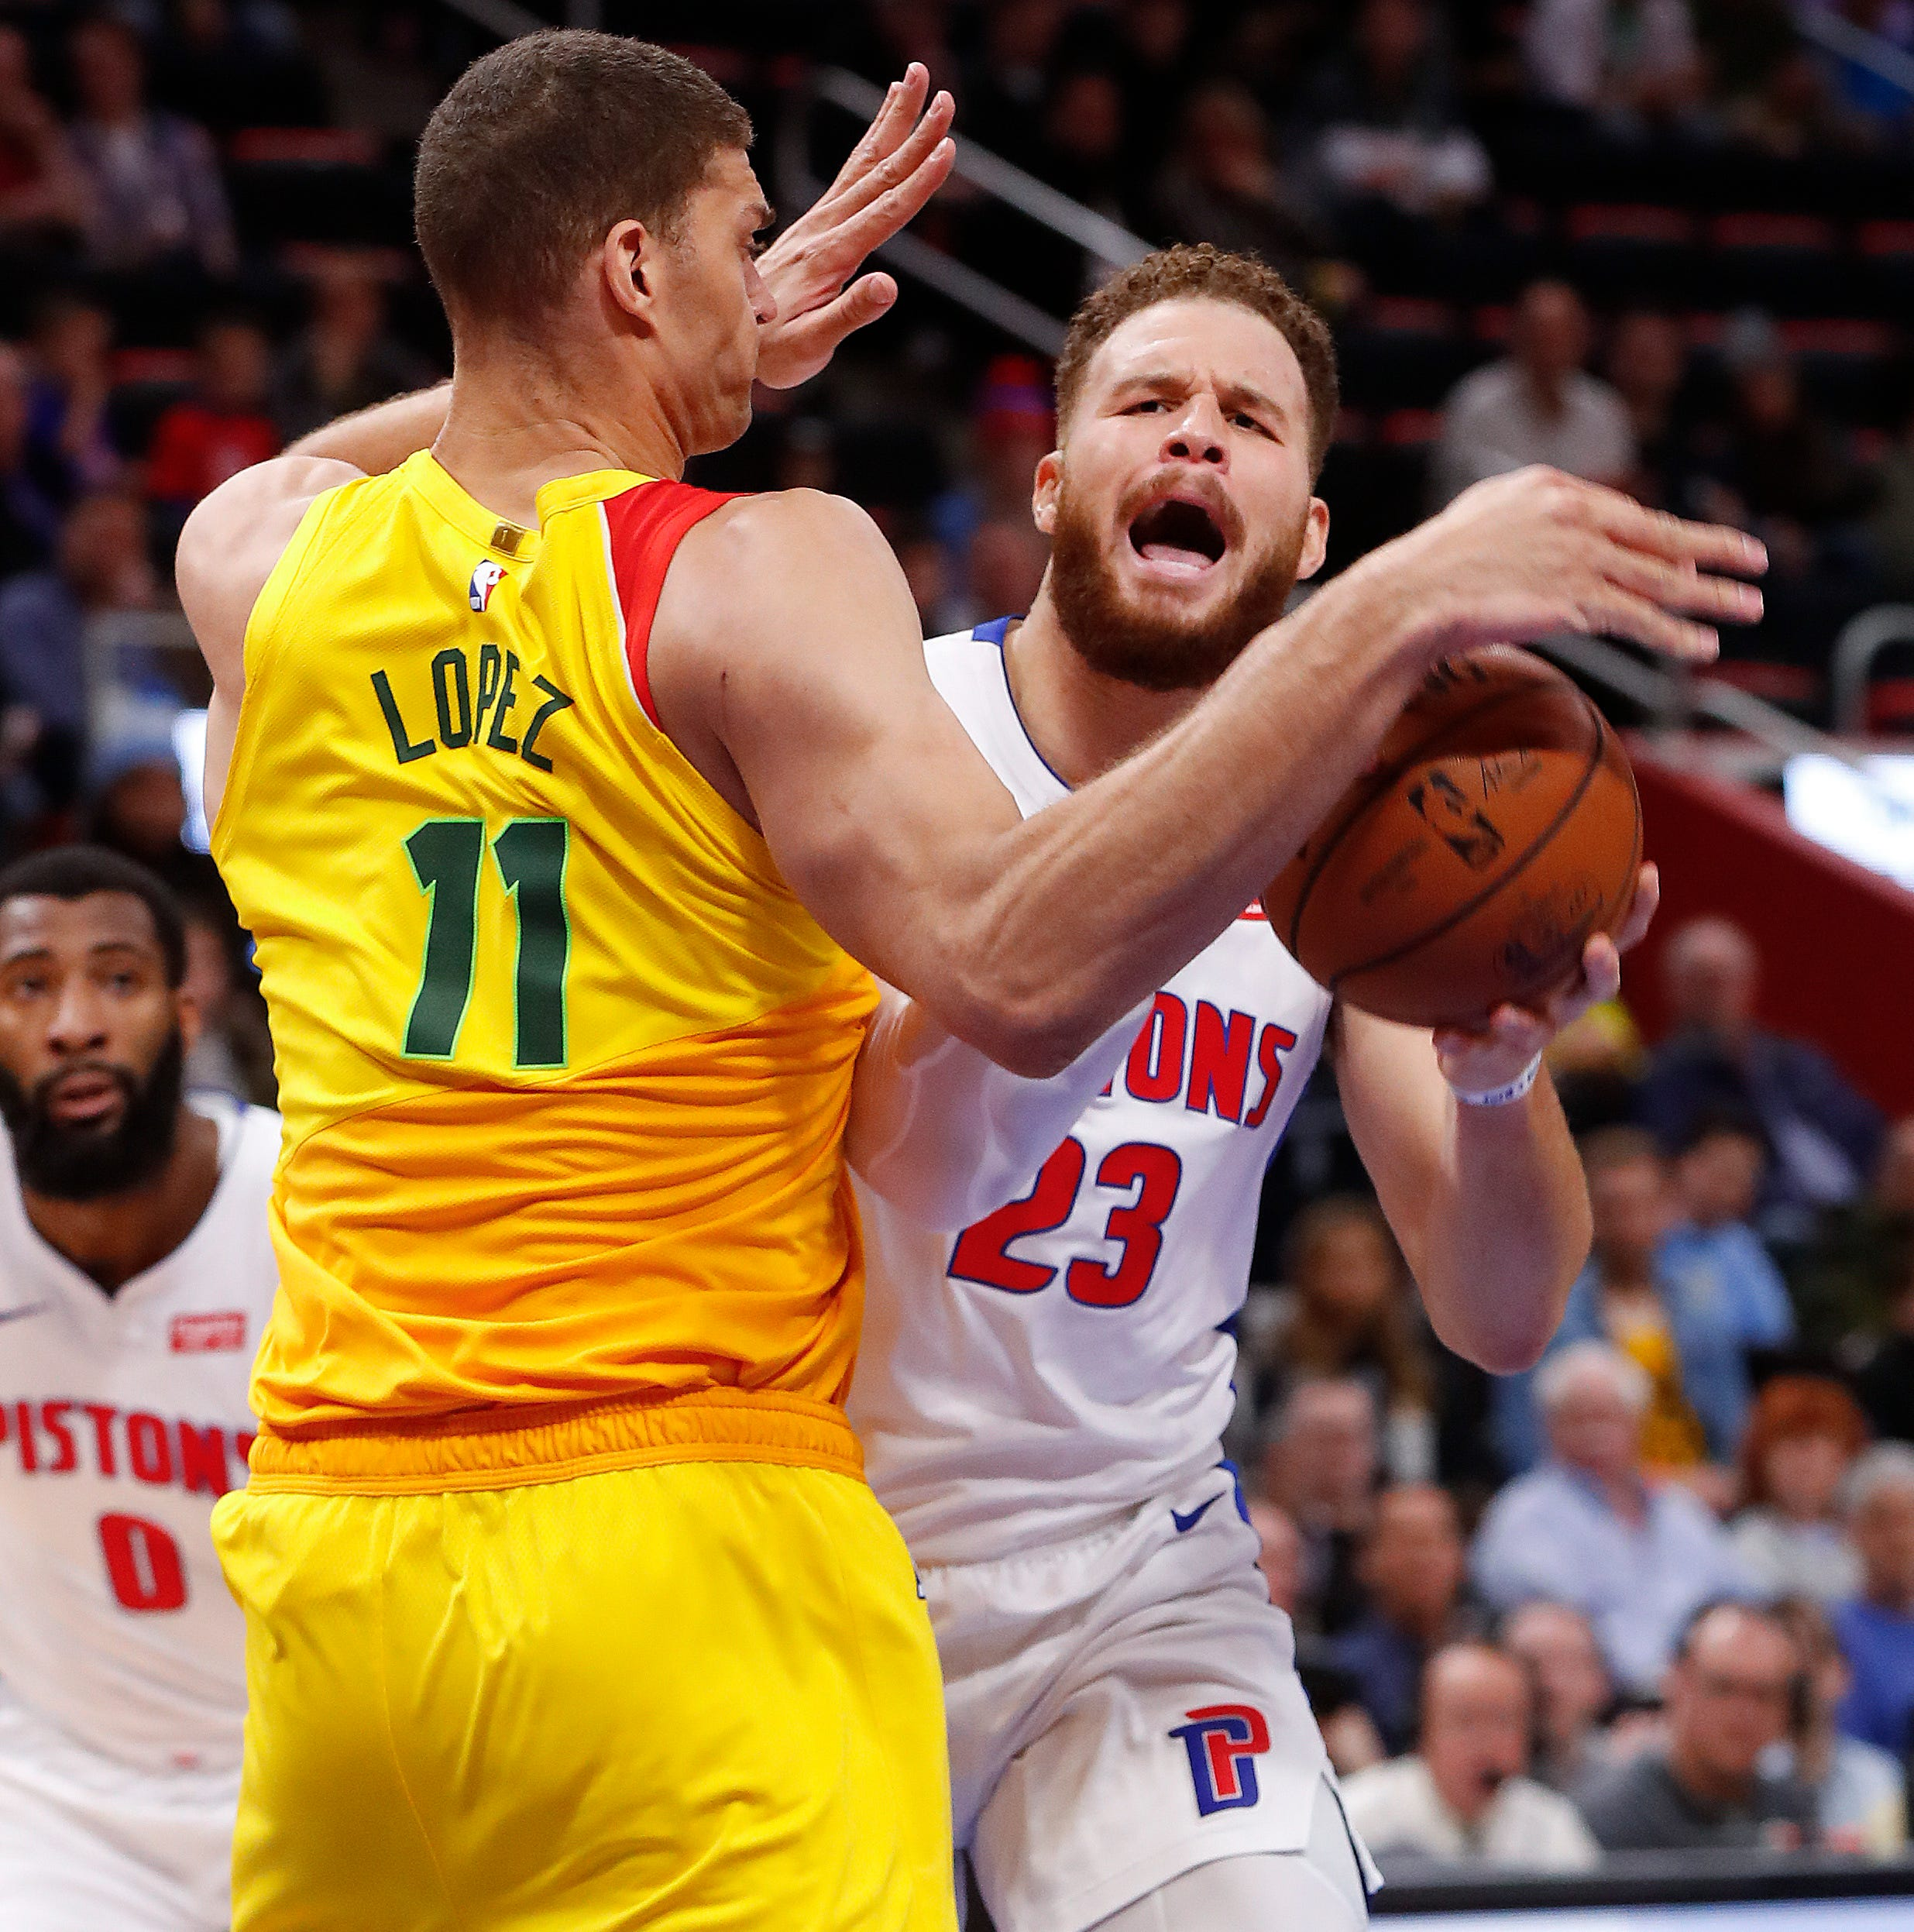 Pistons mailbag: Pistons work on plans to build around Griffin, within cap